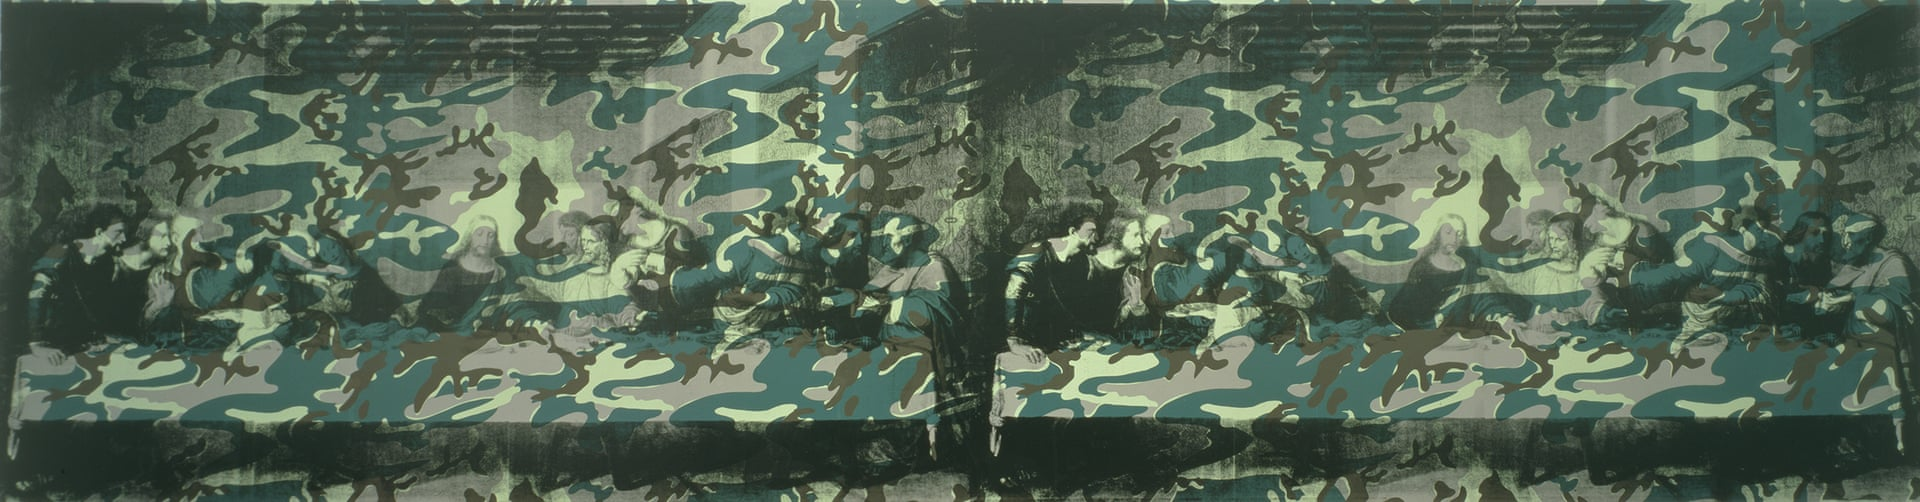 Camouflage Last Supper (1986):